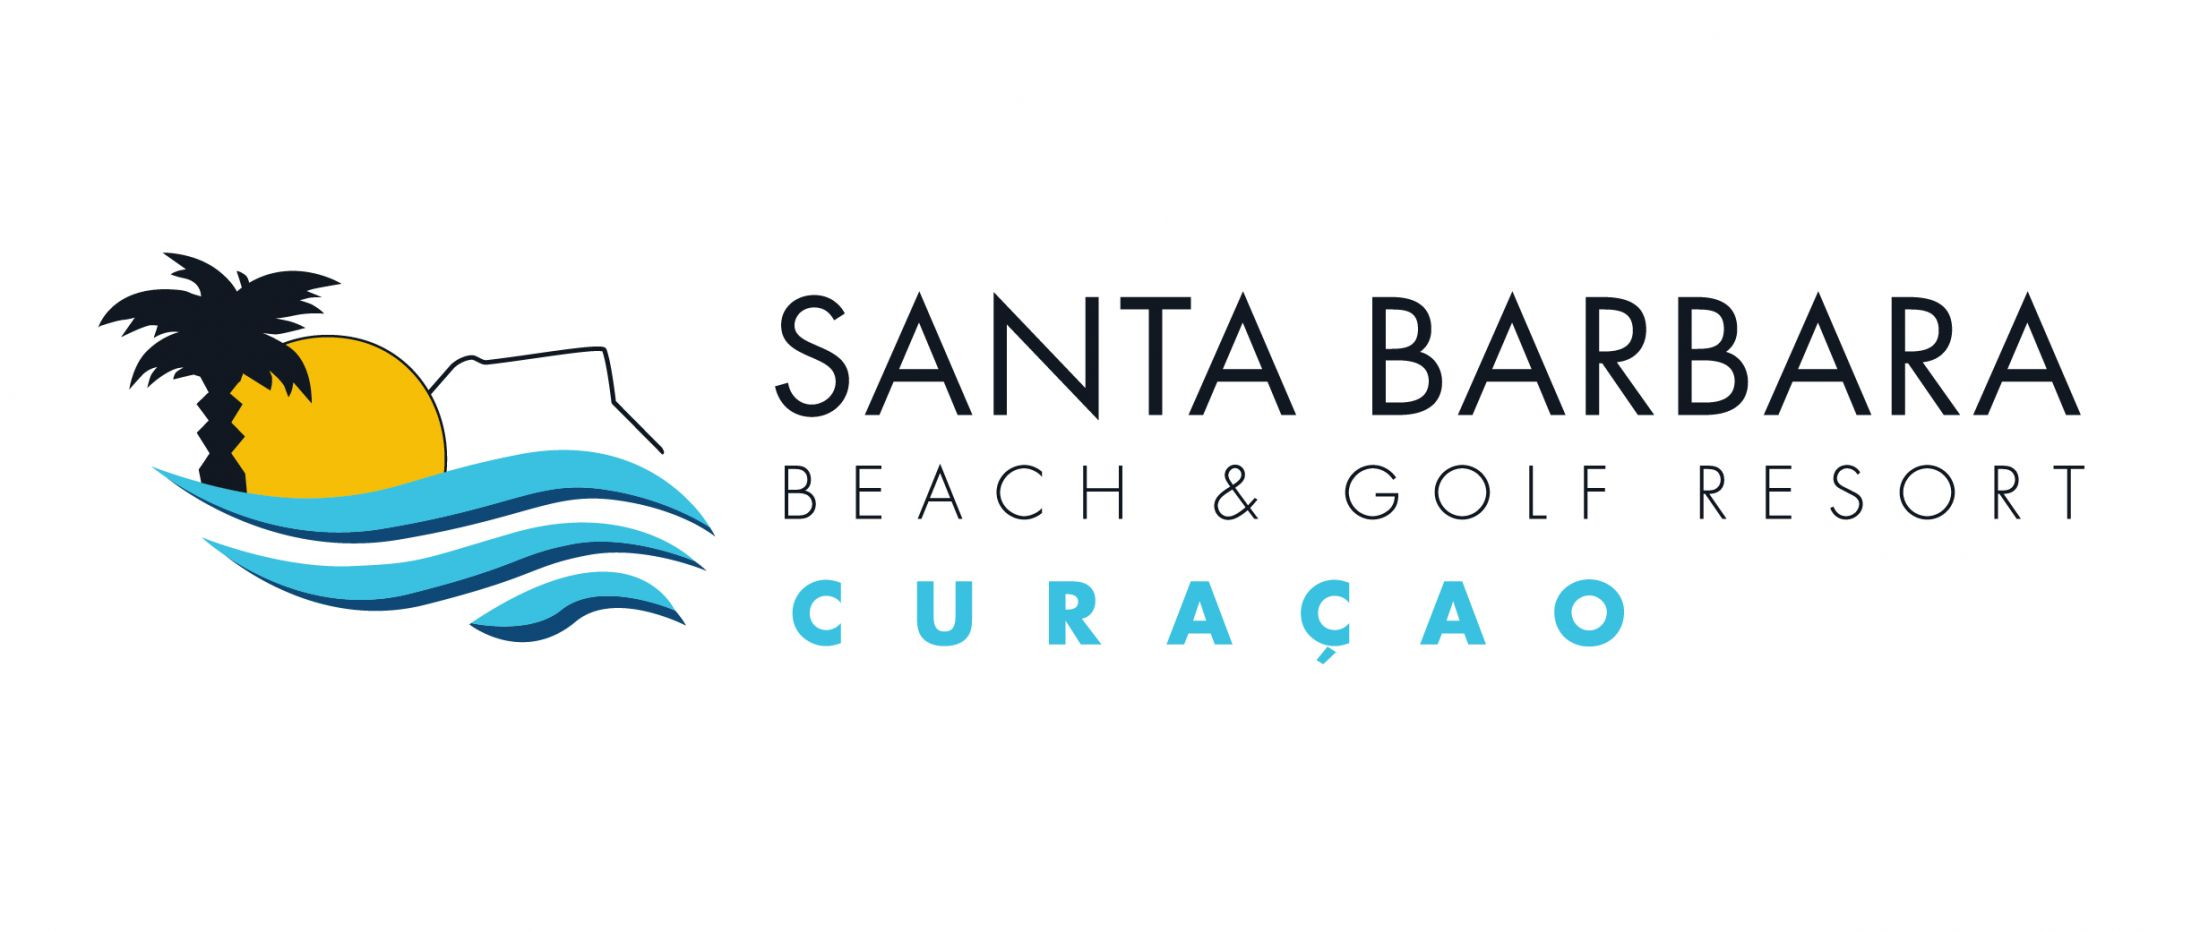 Santa Barbara Beach and Golf Resort